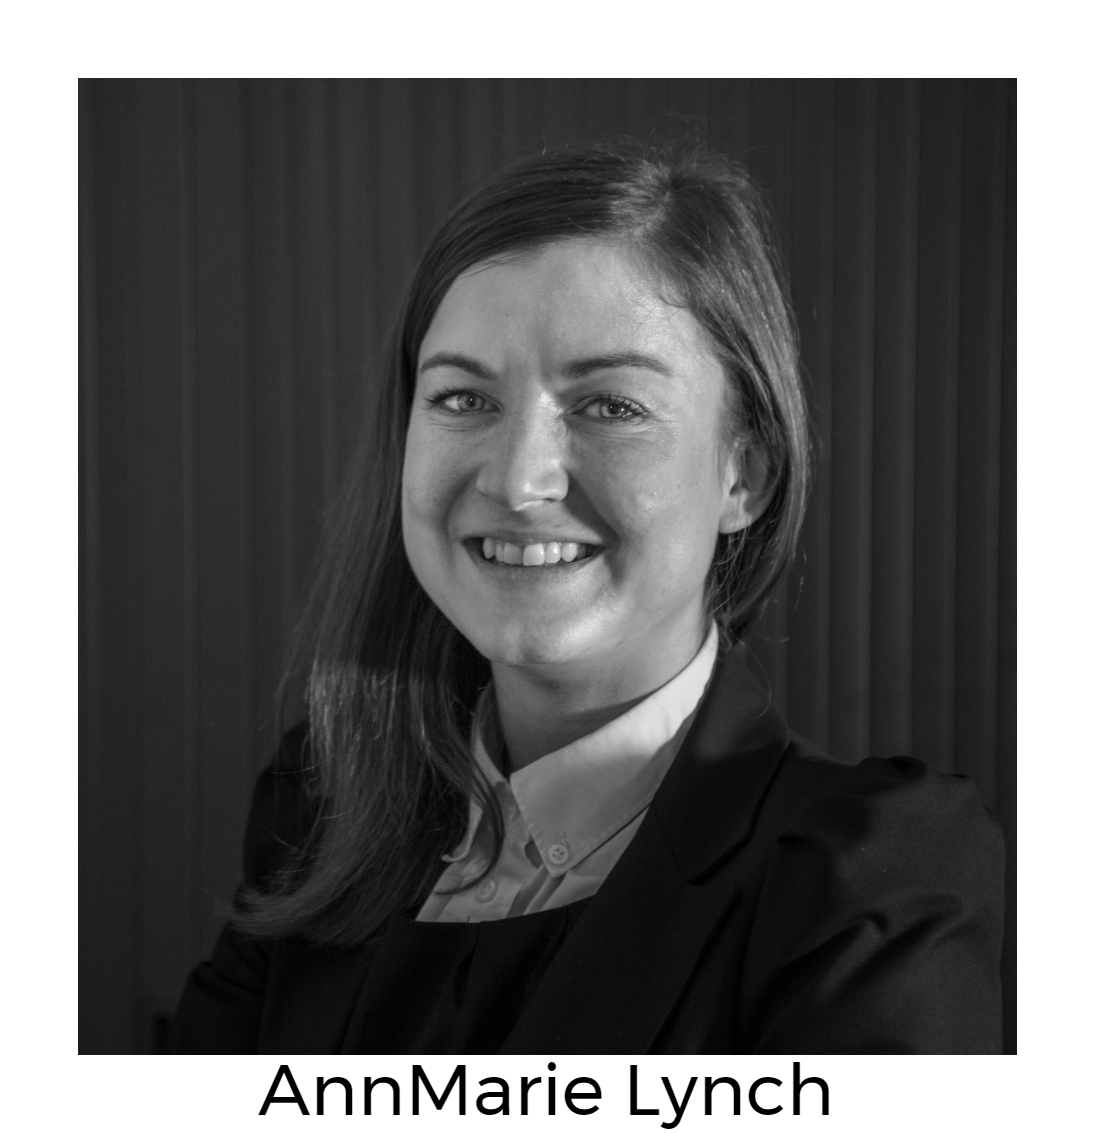 AnnMarie Lynch Solicitor